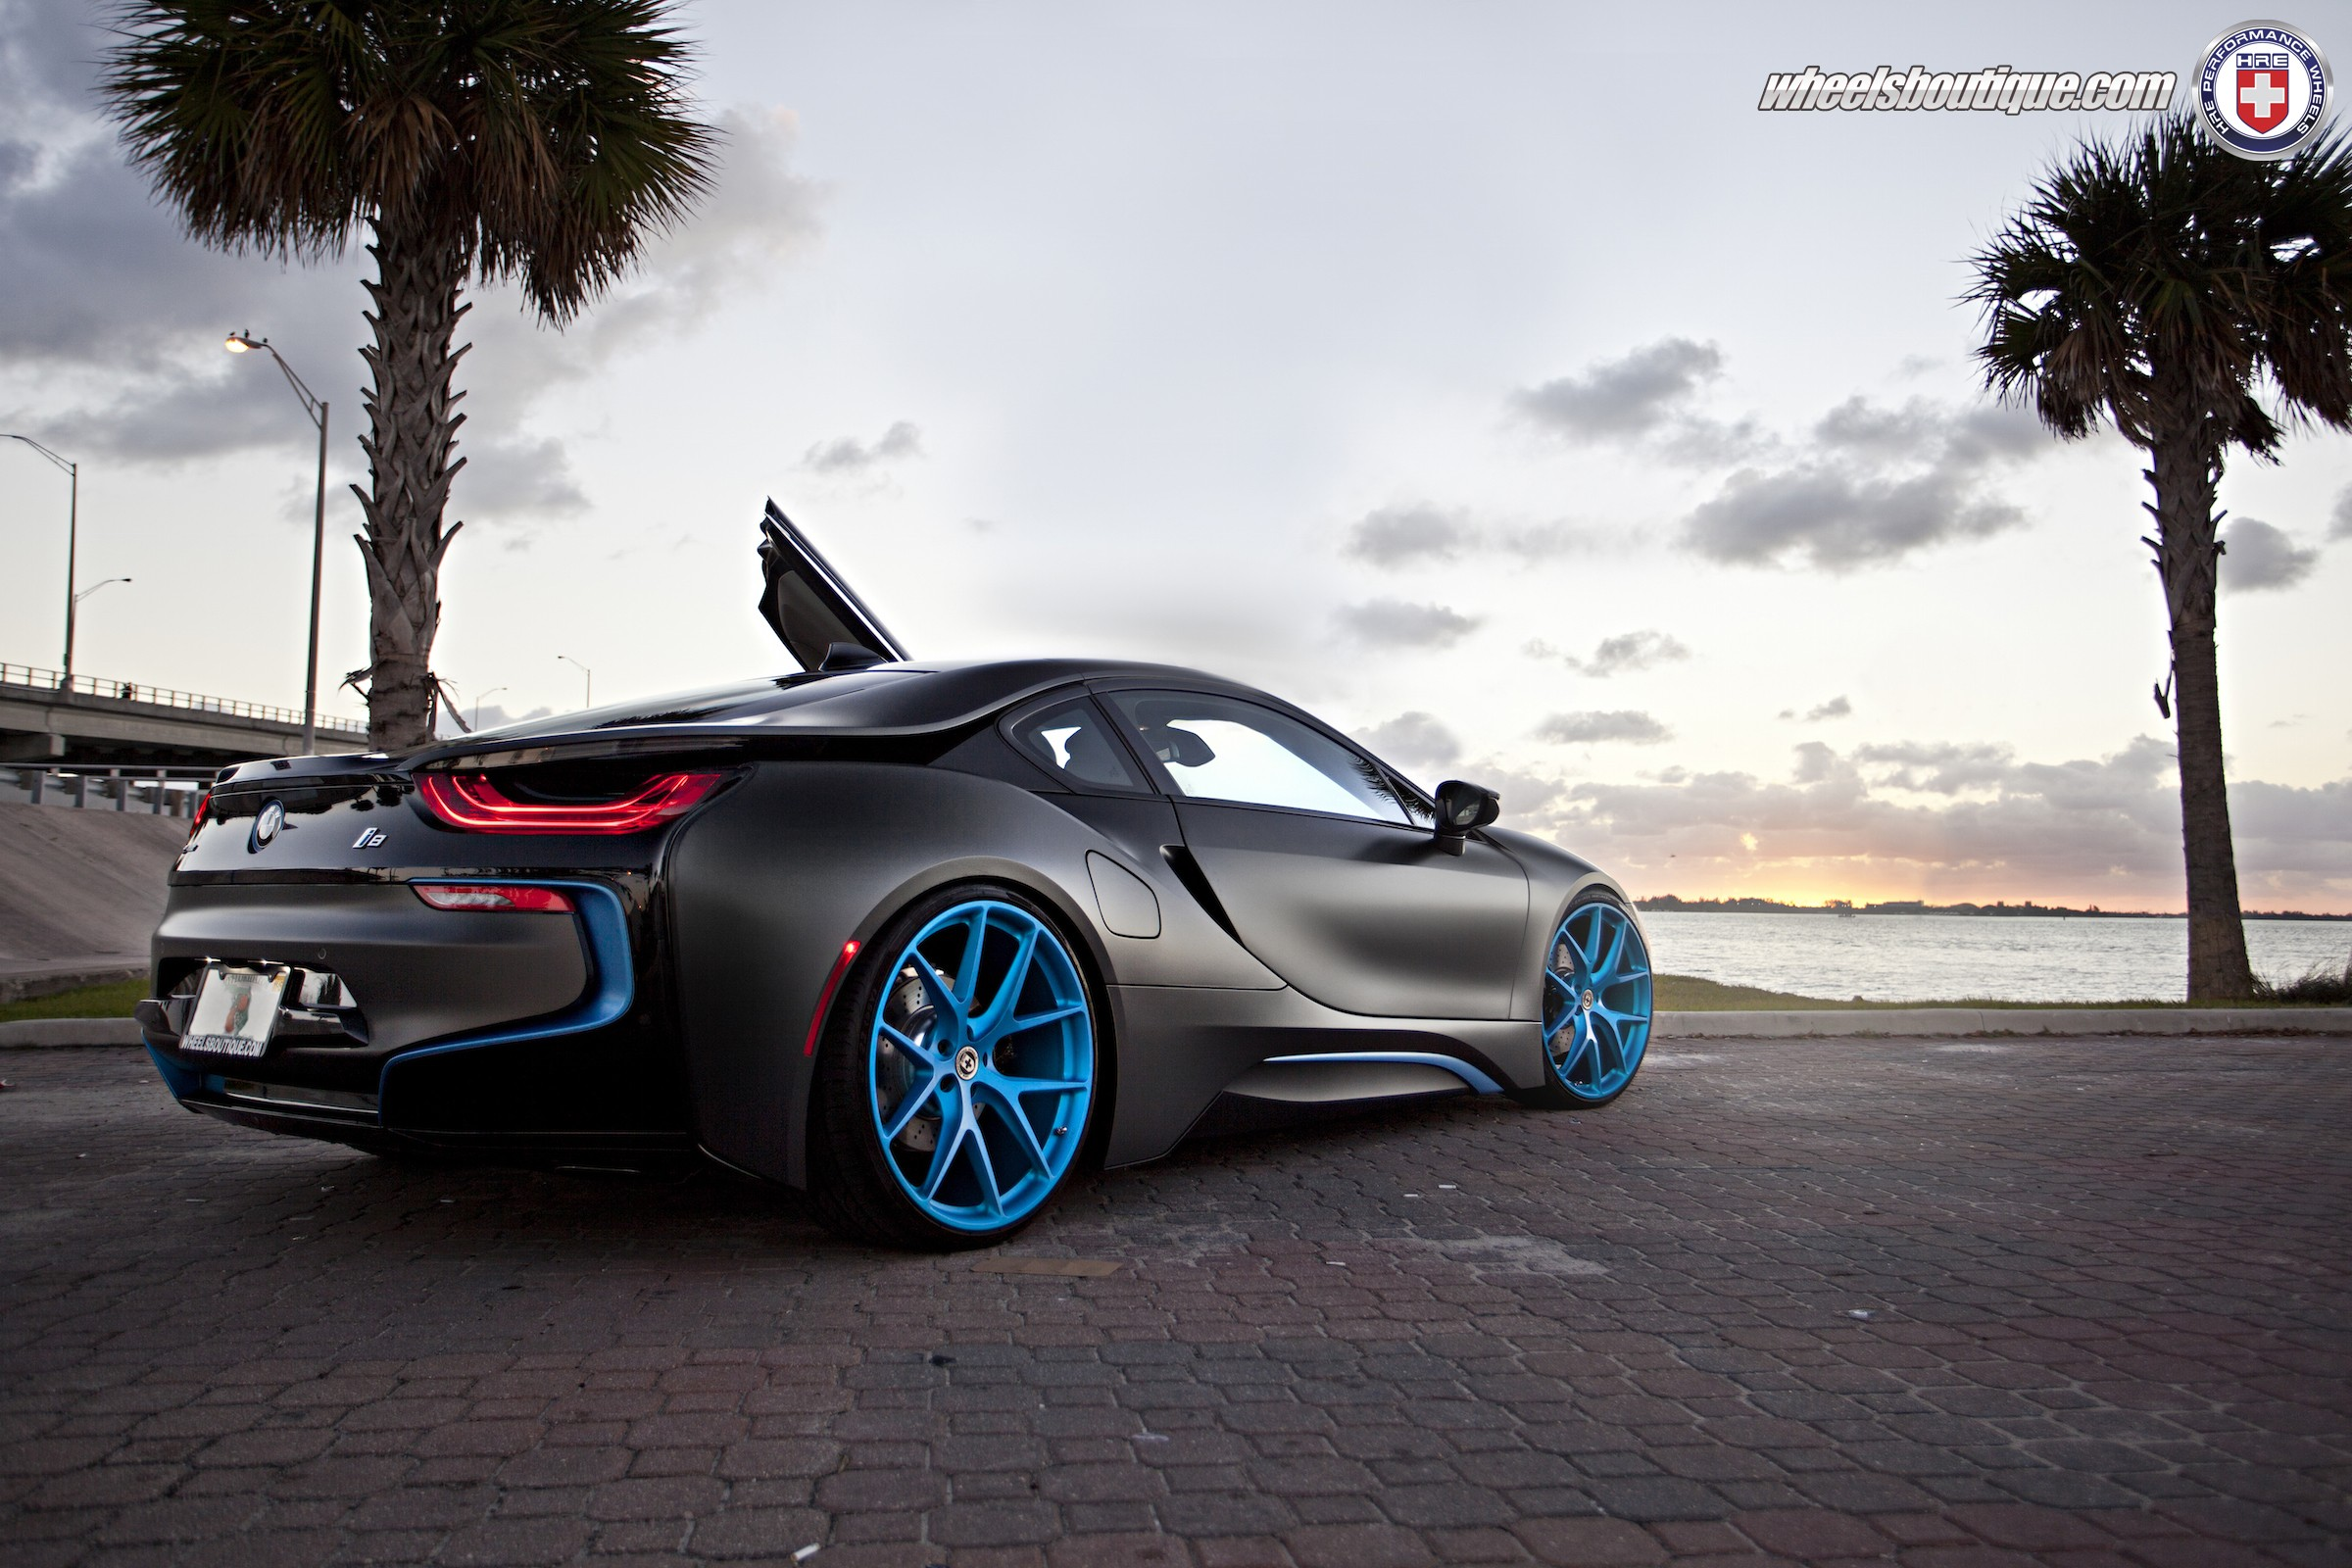 Matte Black Bmw I8 On Frozen Blue HRE P101 Wheels